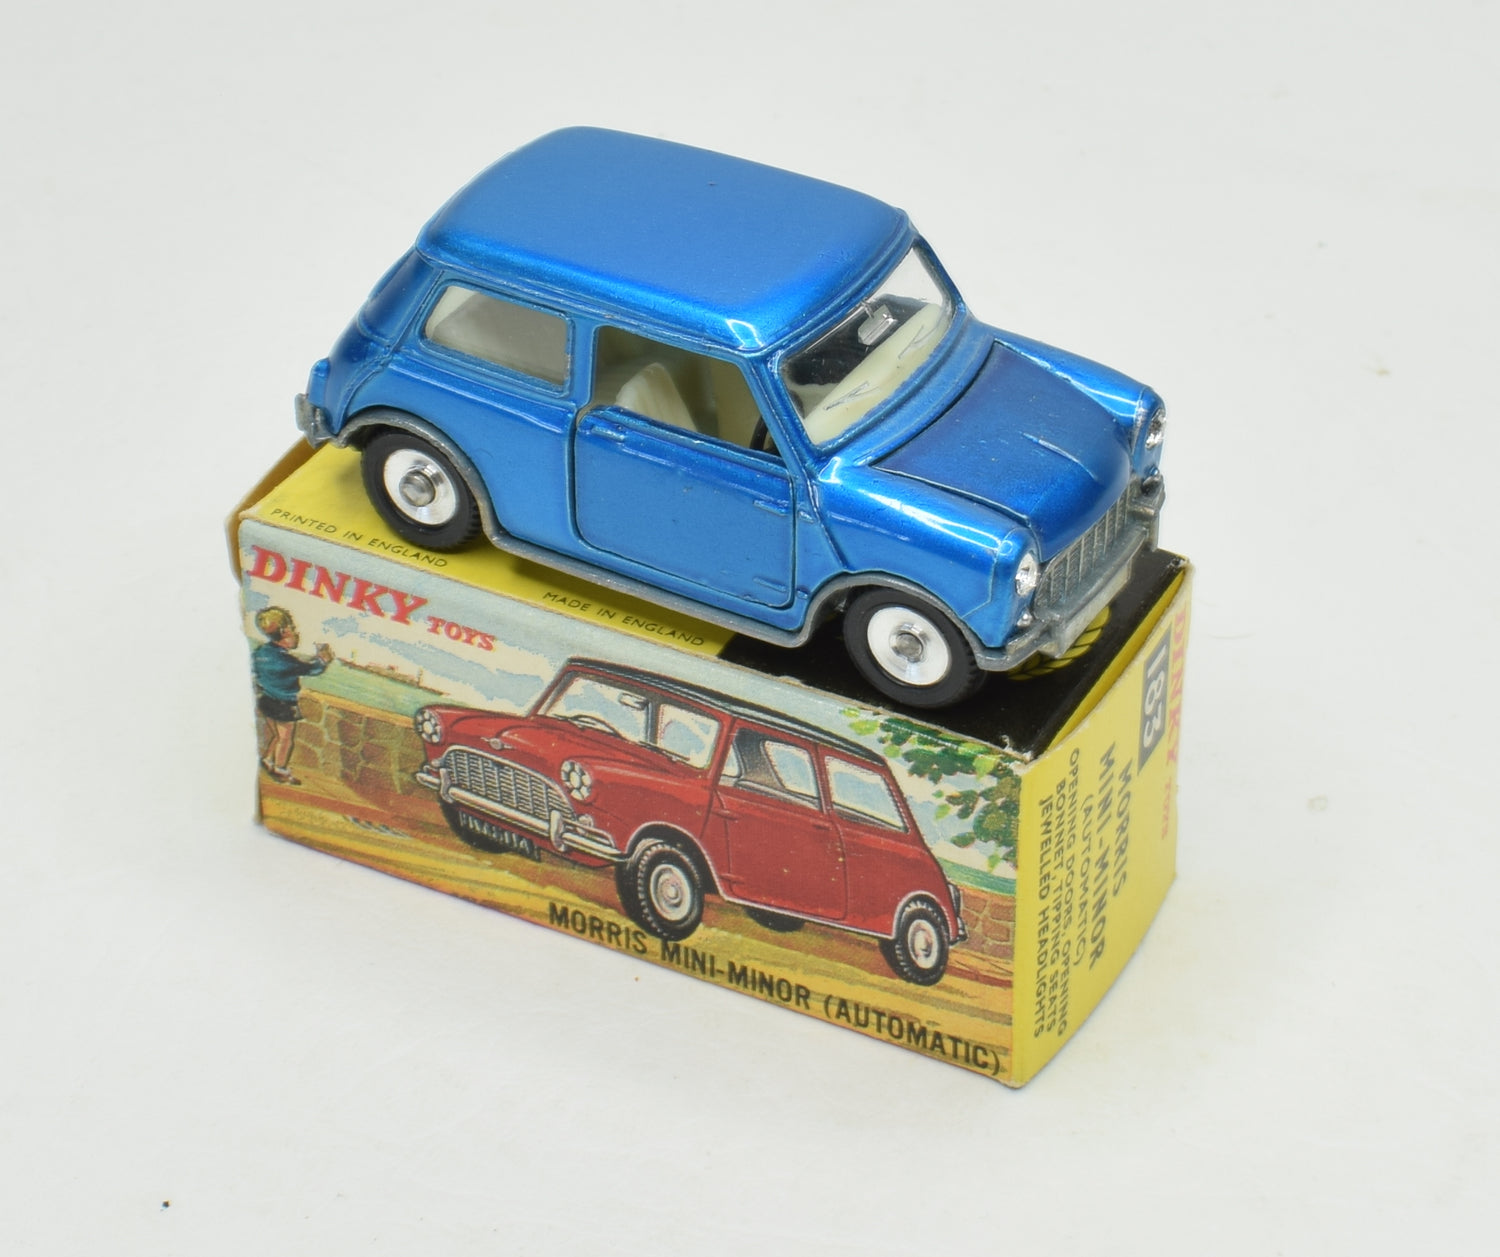 Dinky toys 183 Morris Mini Minor Virtually Mint/Boxed 'Stenland' Collection